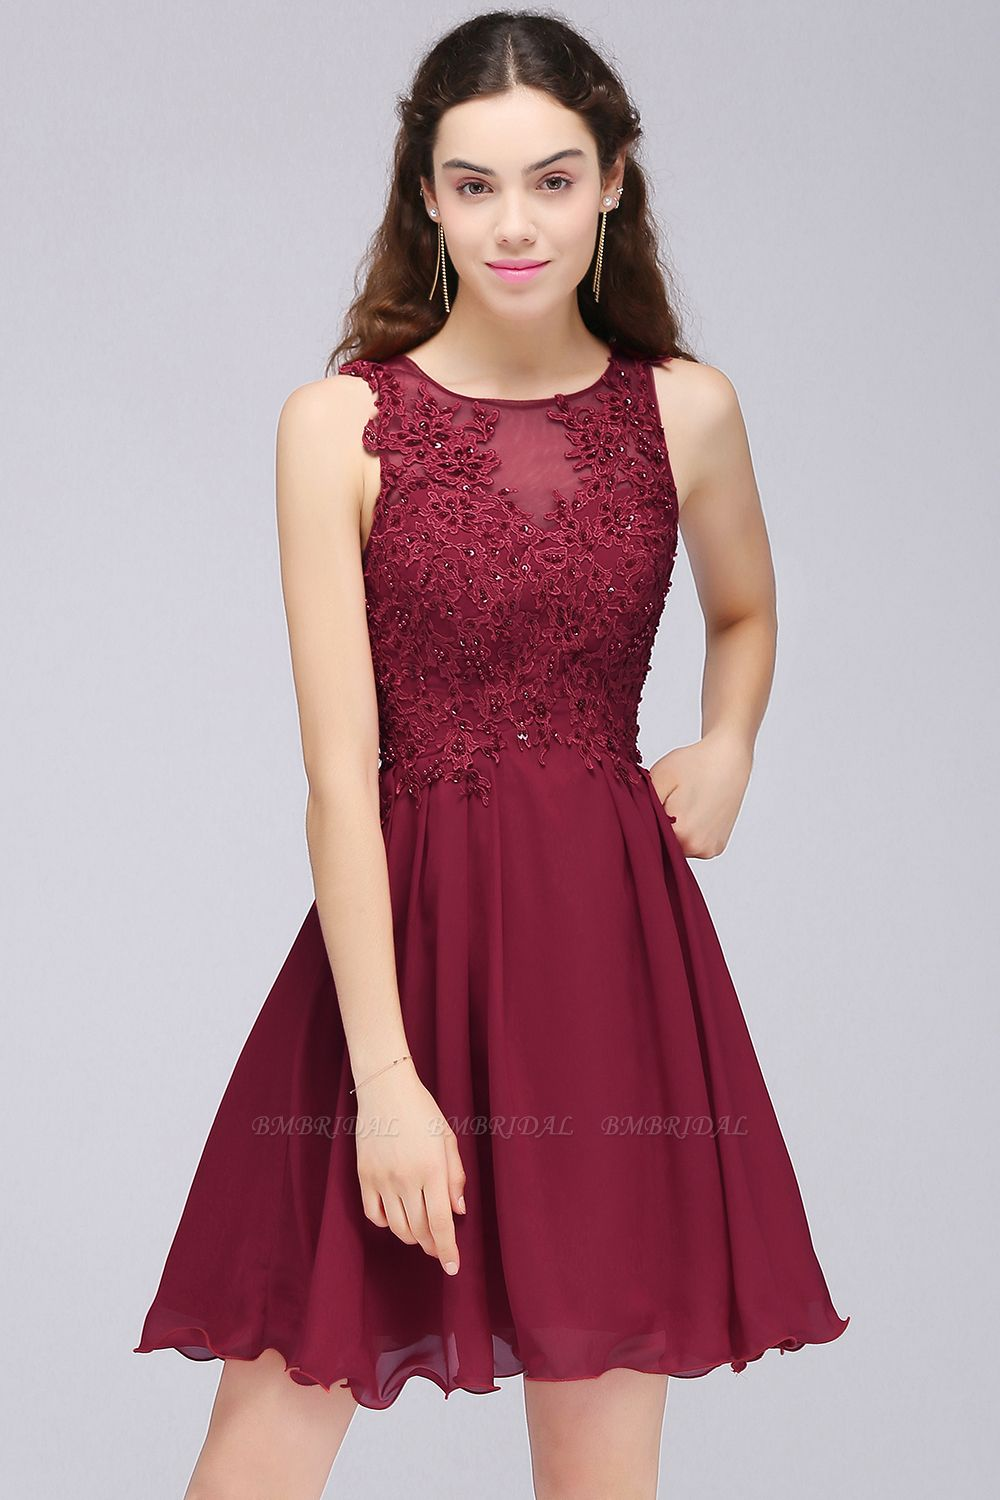 BMbridal Burgundy A-line Homecoming Dress with Lace Appliques